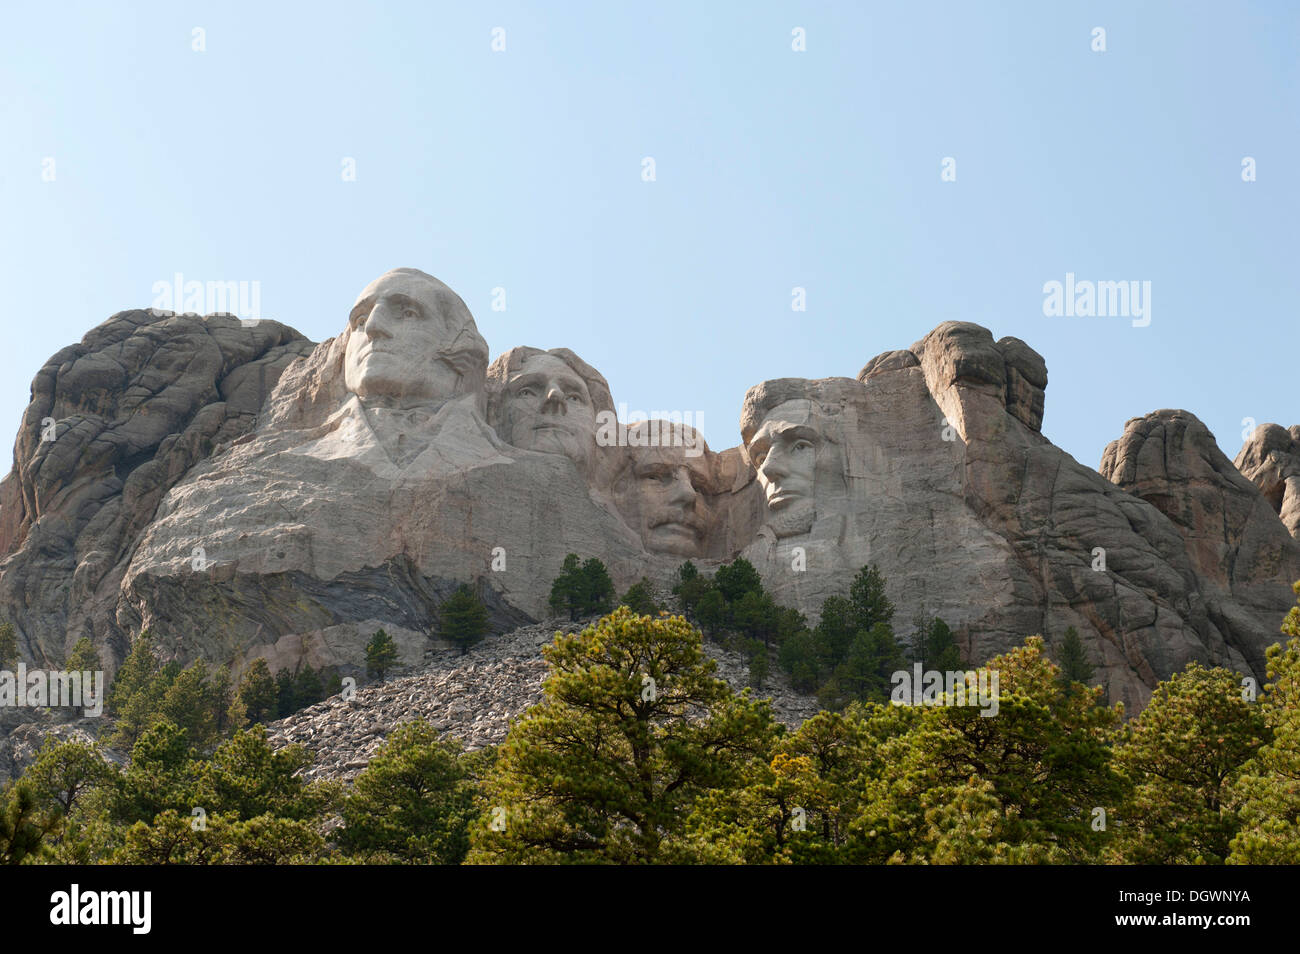 Busts of four presidents carved in rock, Mount Rushmore National Memorial, near Rapid City, South Dakota, USA Stock Photo